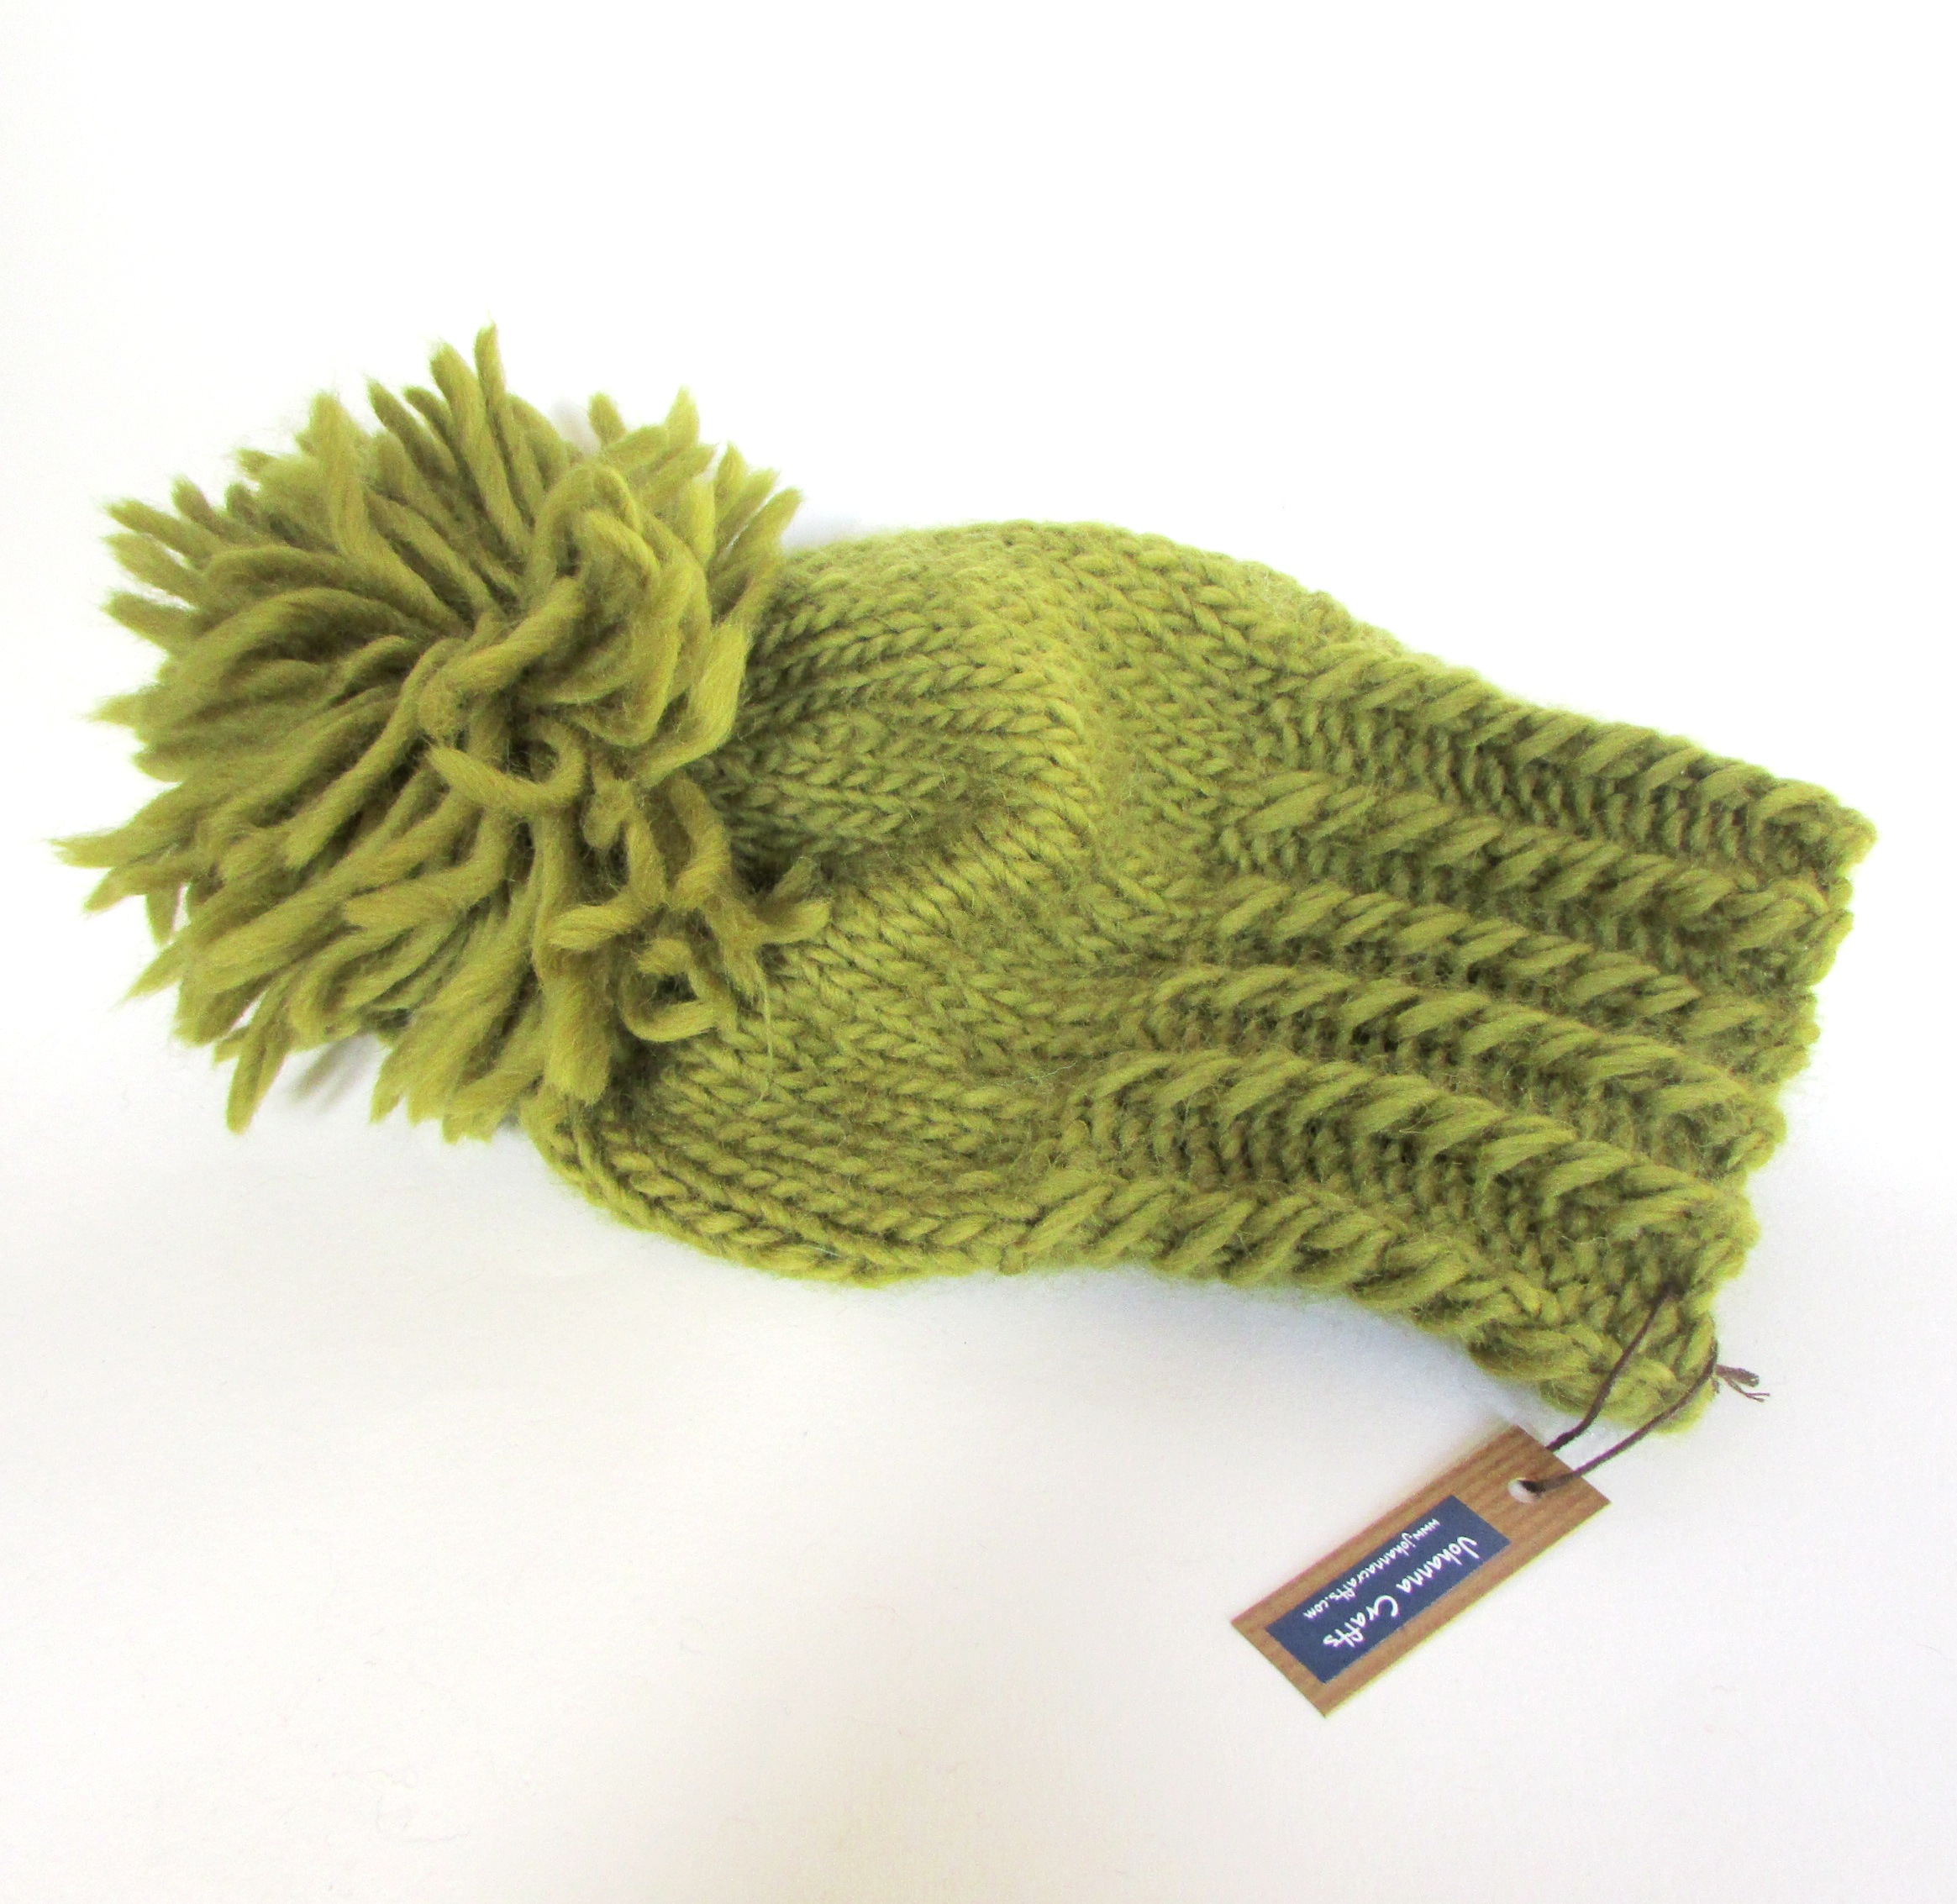 Irish hand knit olive green hat with large pom pom - chunky knit fun ... 04877d32615e